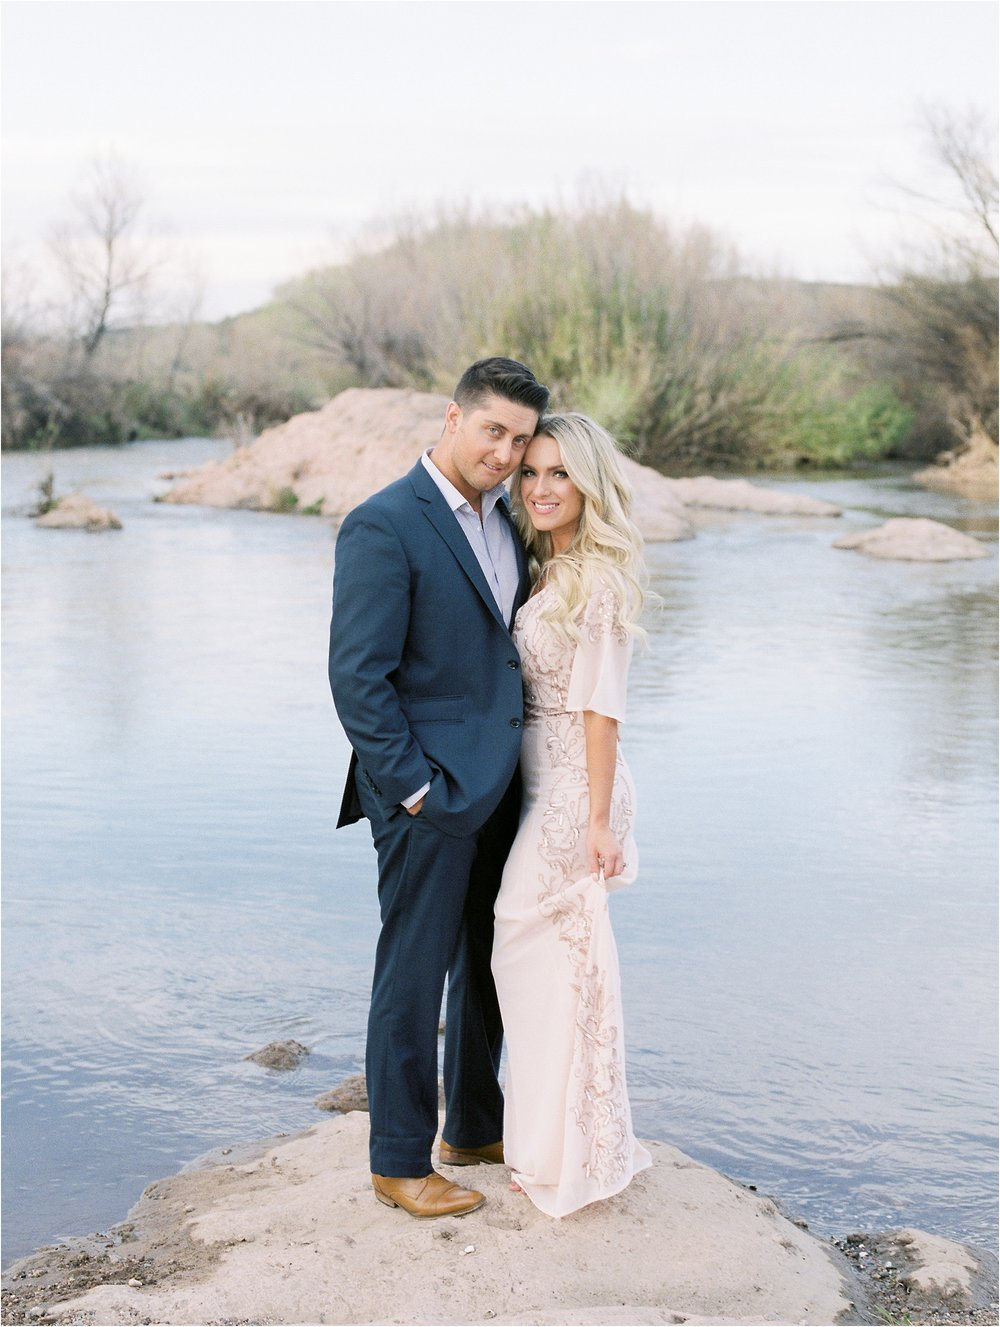 Sarah Jane Photography Film Hybrid Scottsdale Phoenix Arizona Destination Wedding Photographer salt river asos engagement britney tj_0024.jpg